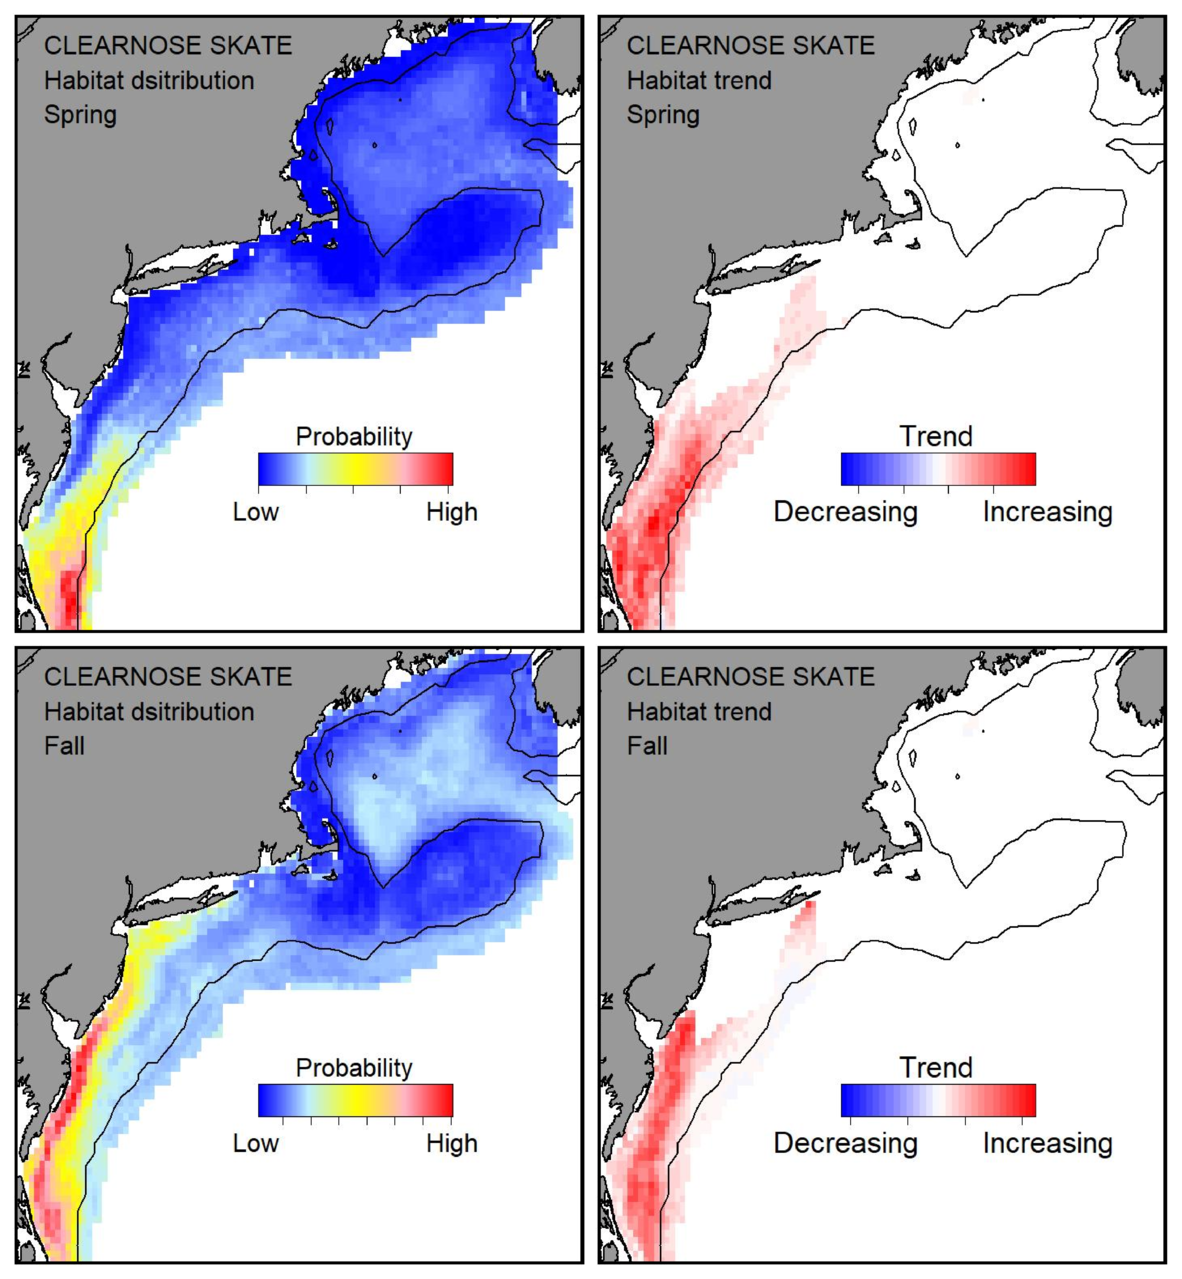 Top row: Probable habitat distribution for clearnose skate showing the highest concentration and increasing trend in the Gulf of Maine during the spring. Bottom row: Probable habitat distribution for clearnose skate showing the highest concentration and increasing trend in the Gulf of Maine during the fall.